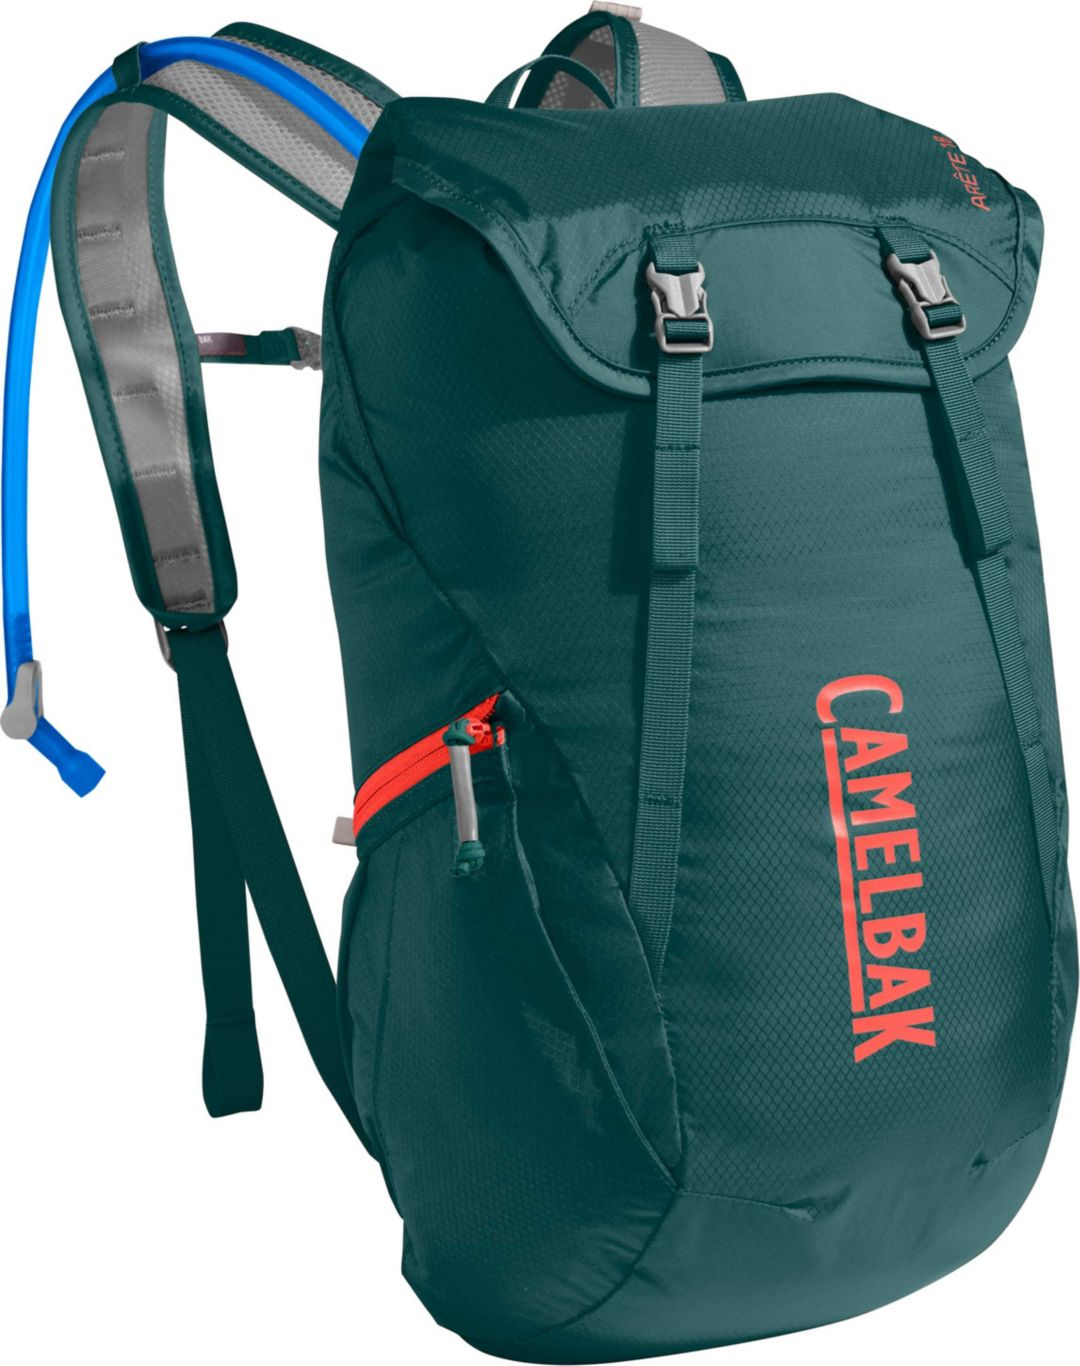 1ac527e4e0 CamelBak Arete 18 50 oz. Hydration Pack | DICK'S Sporting Goods